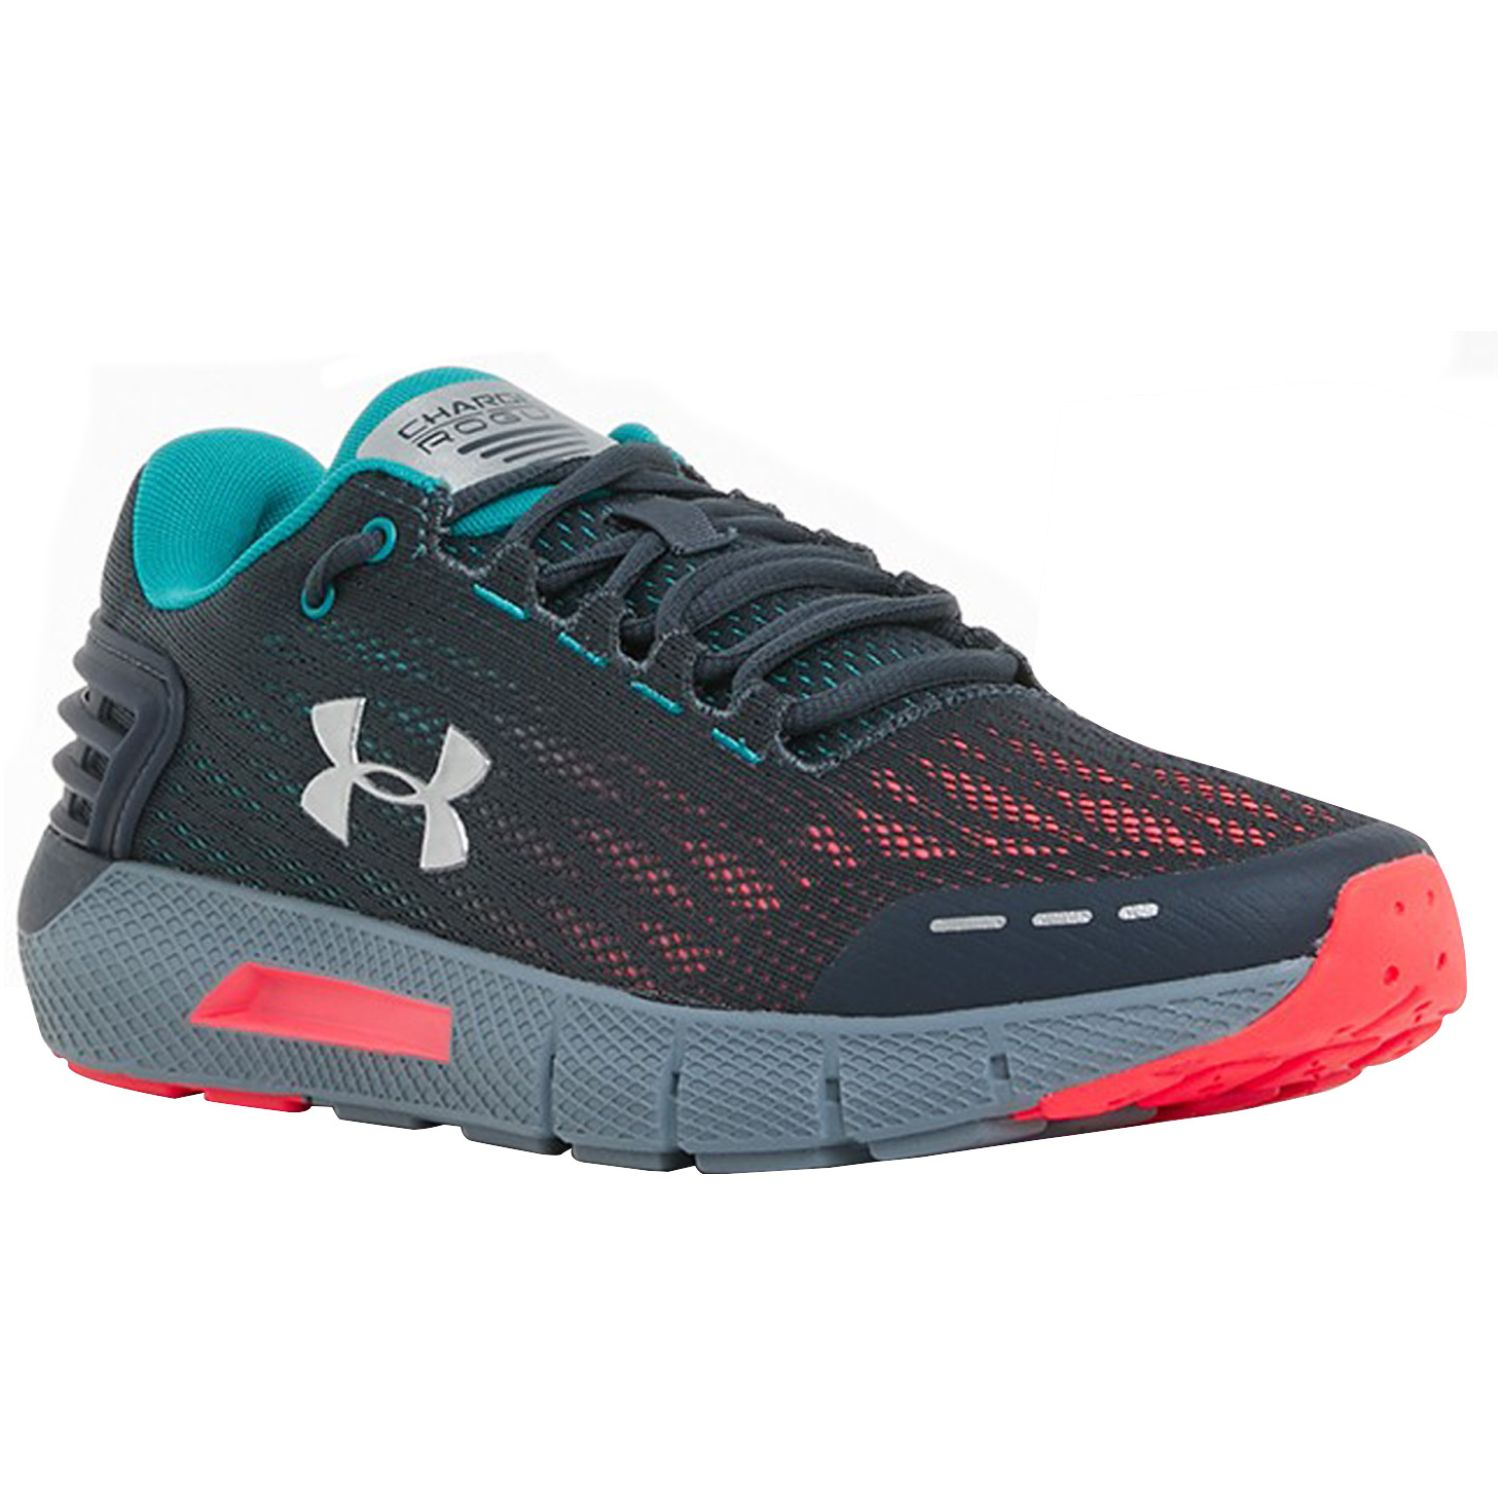 Under Armour ua charged rogue Negro / turquesa Trail Running